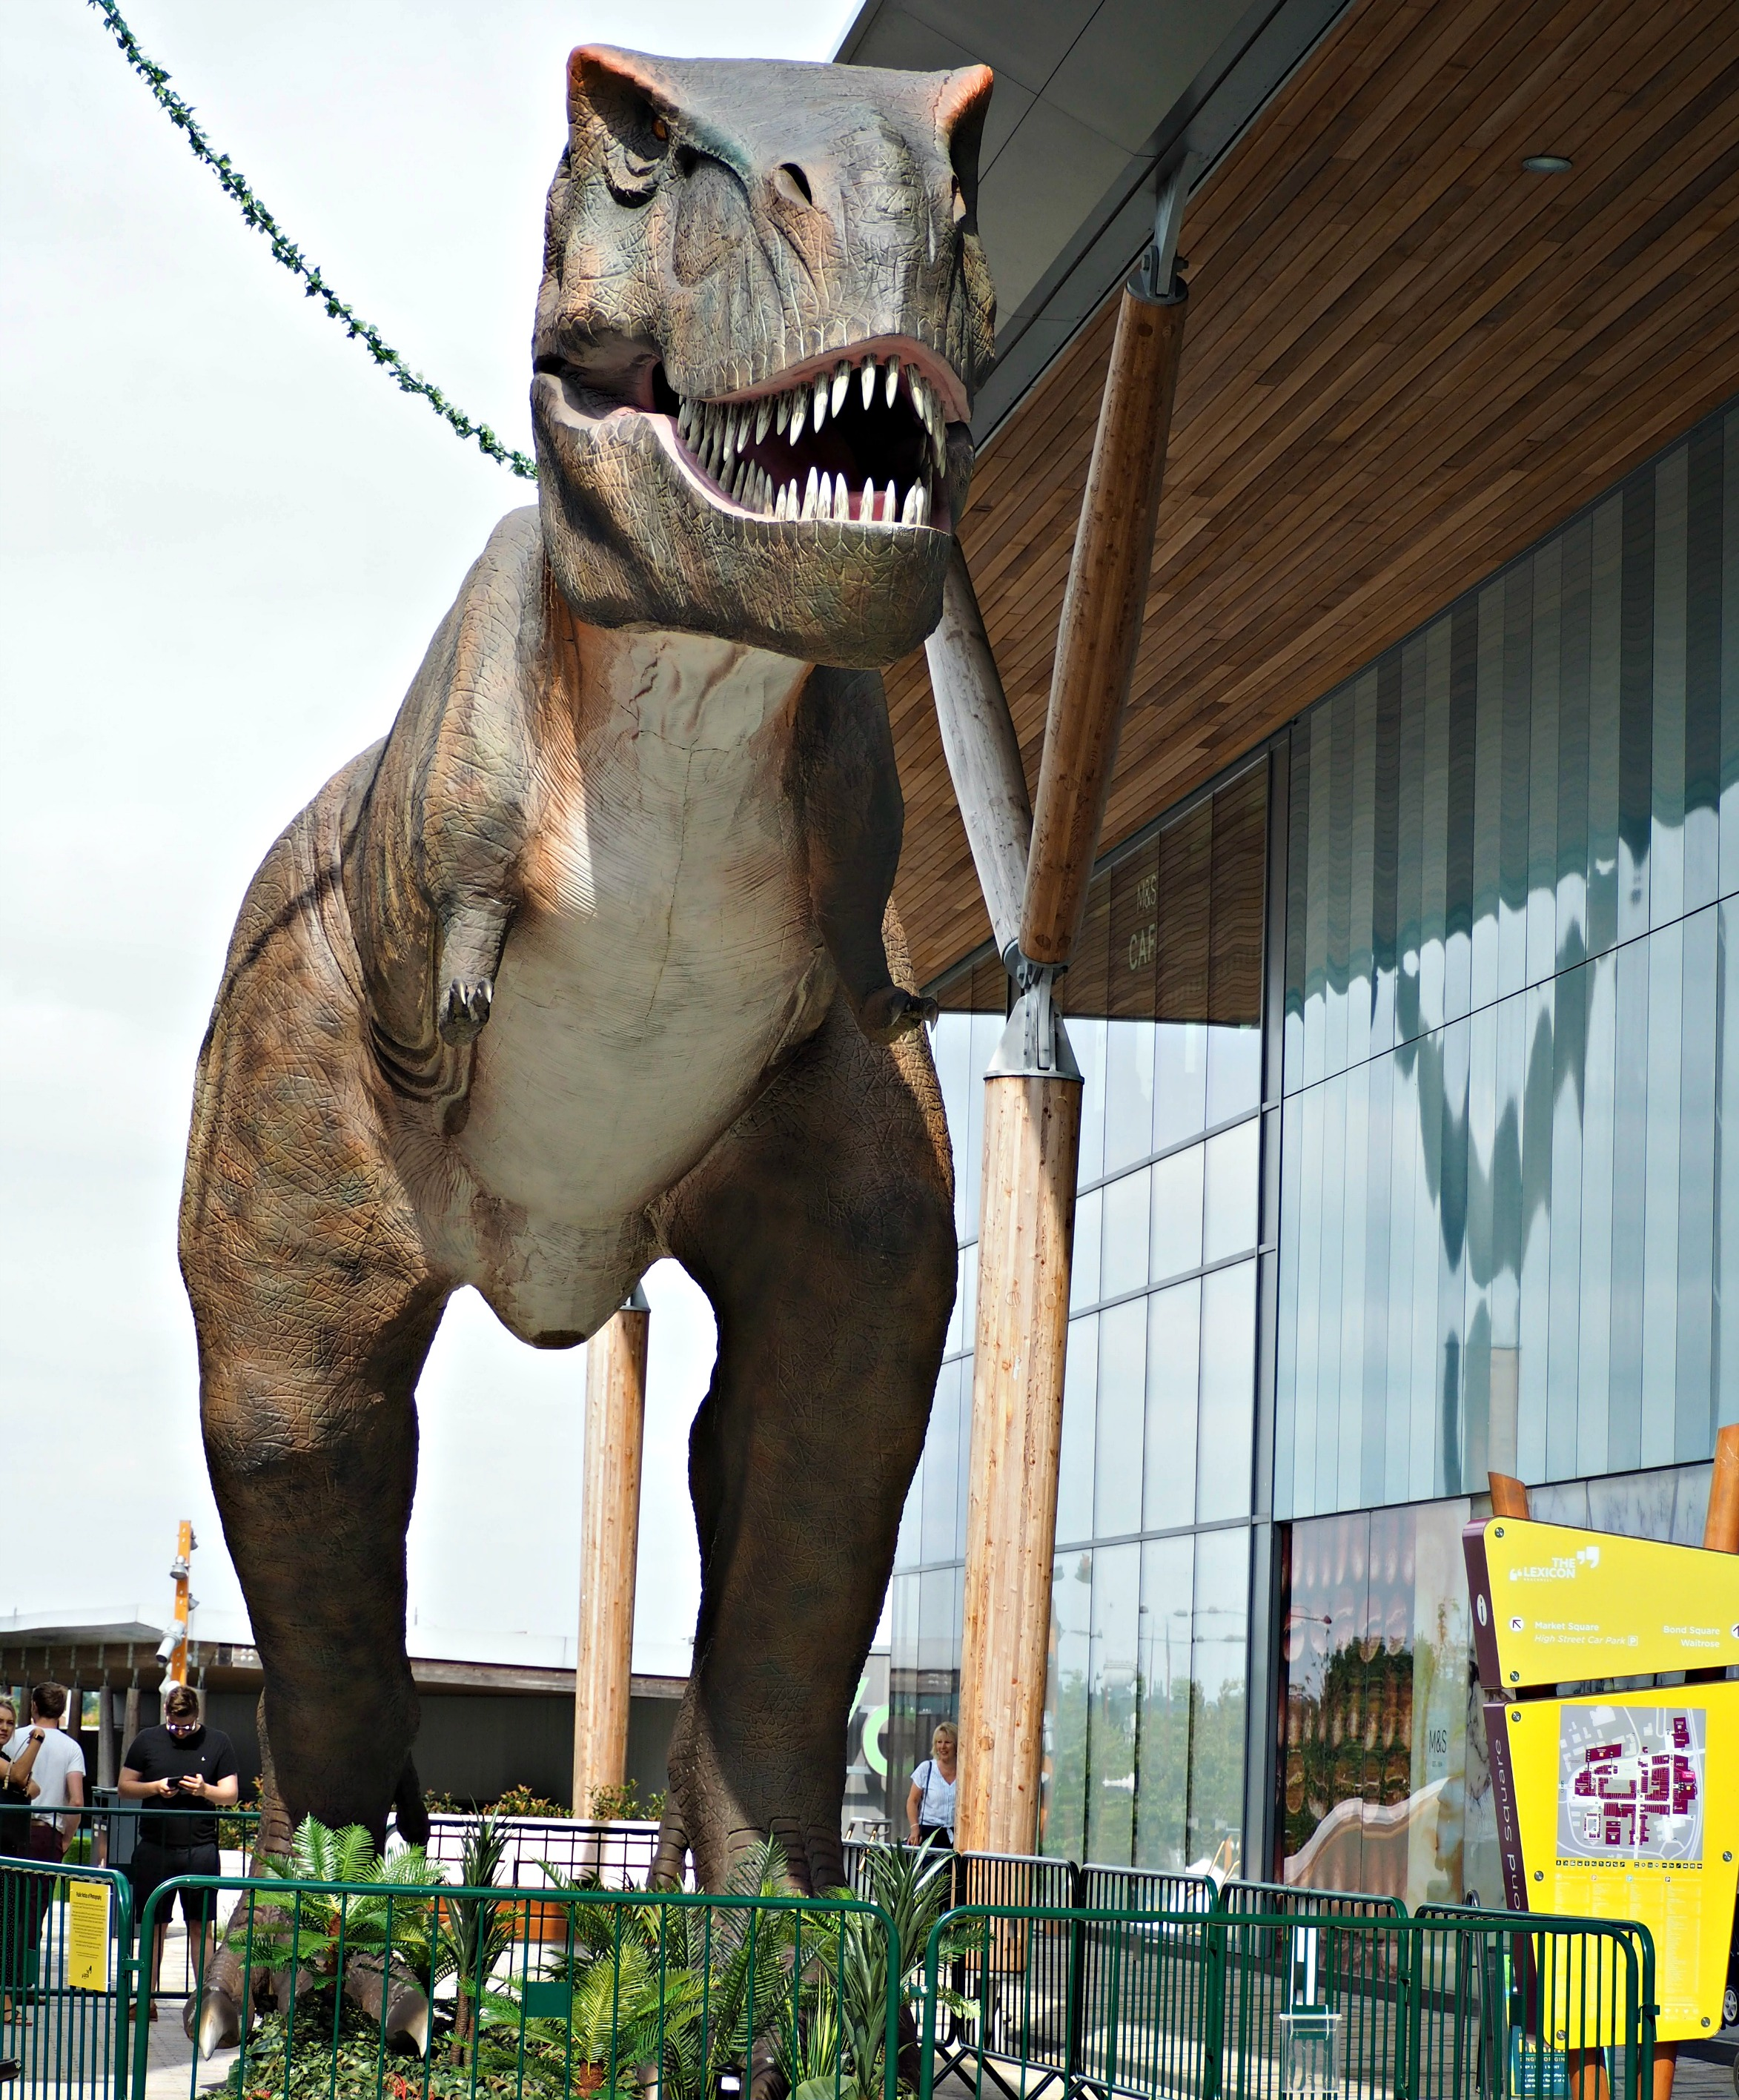 Meet T-Rex at the Lexicon and Other Summer Activities